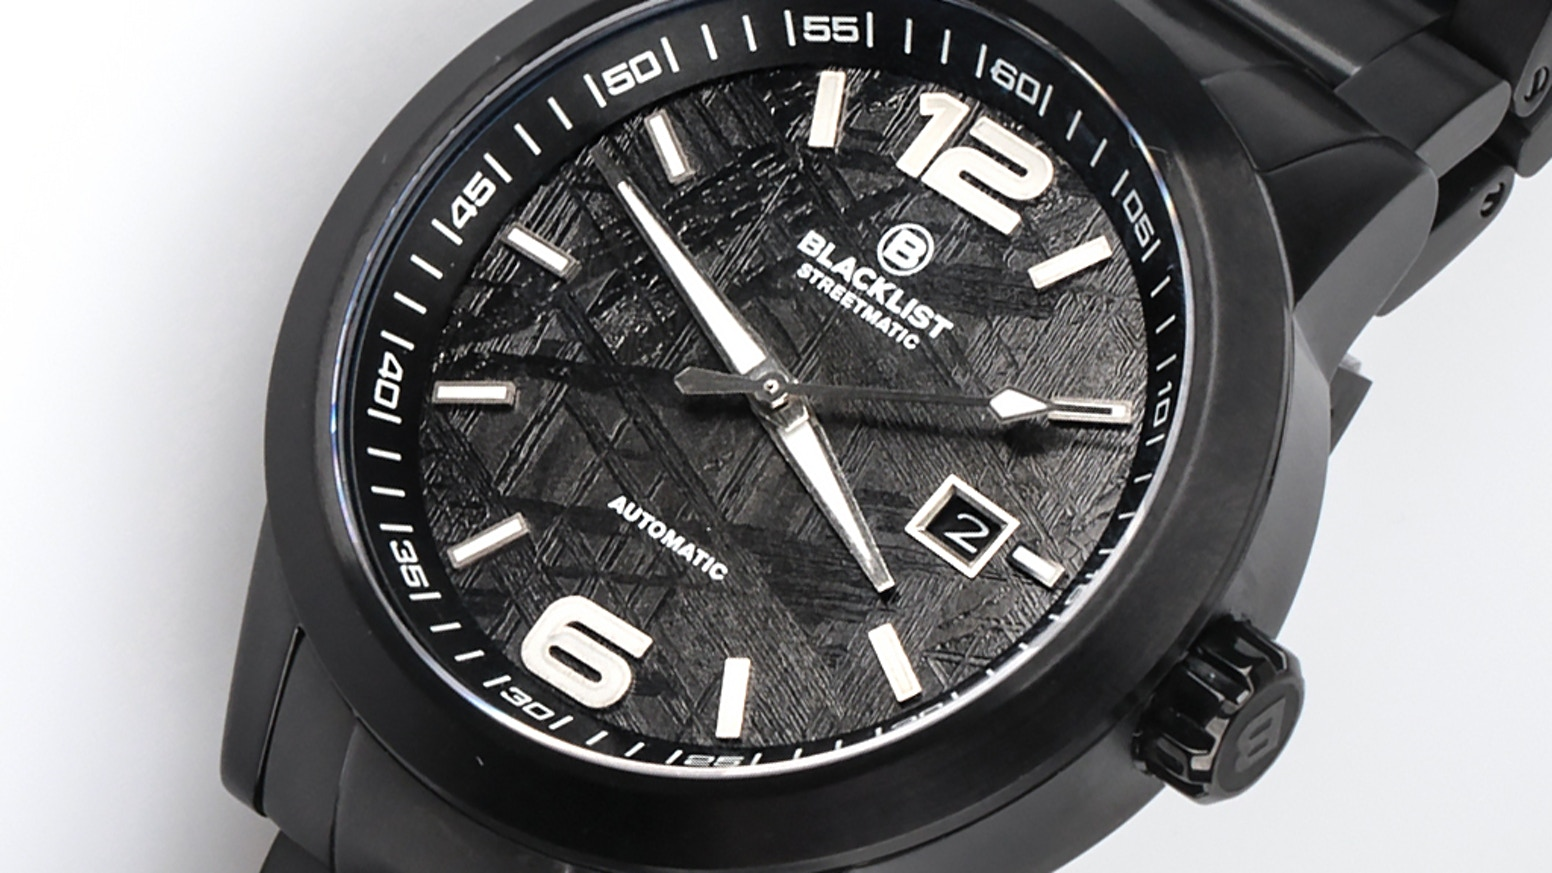 Racing inspired automatic watches featuring exotic dial materials including Blue Carbon, Natural Meteorite, Carbon Fiber and more!